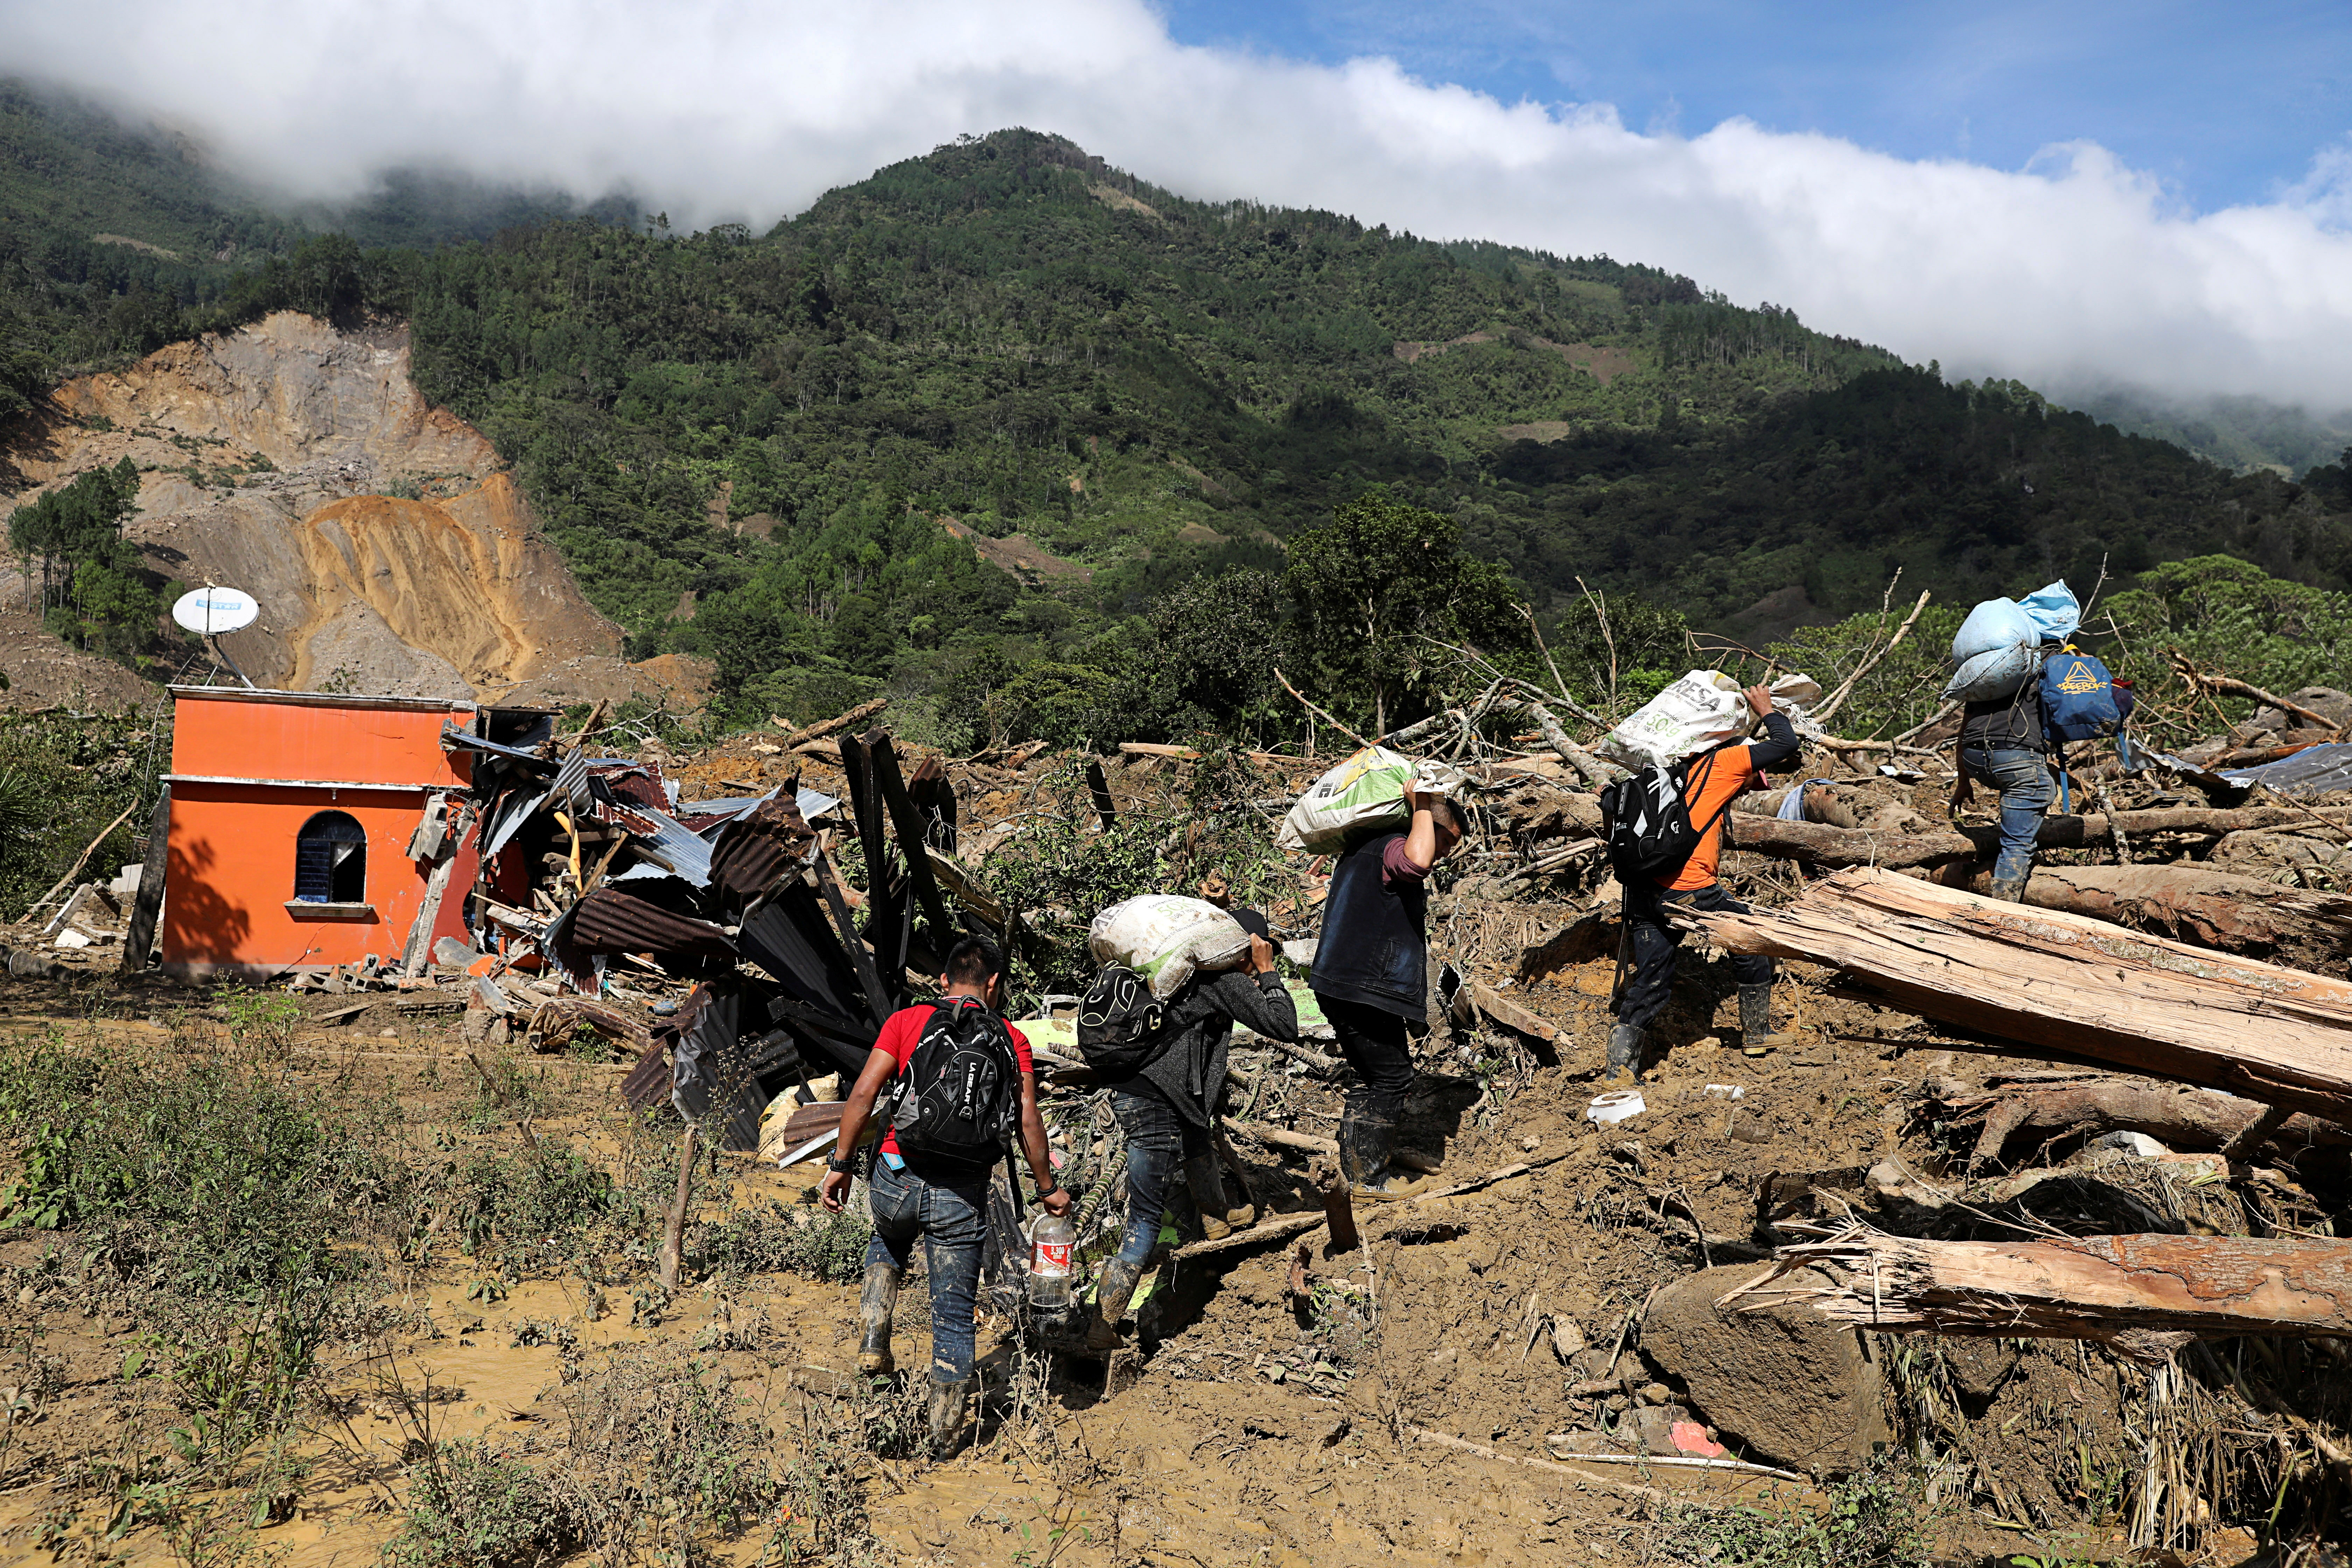 Residents carry their belongings recovered from their houses damaged by a mudslide, caused by heavy rains brought by Storm Eta, as the search for victims continue in the buried village of Queja, Alta Verapaz, Guatemala November 8, 2020. REUTERS/Luis Echeverria     TPX IMAGES OF THE DAY - RC2CZJ9VEL6G